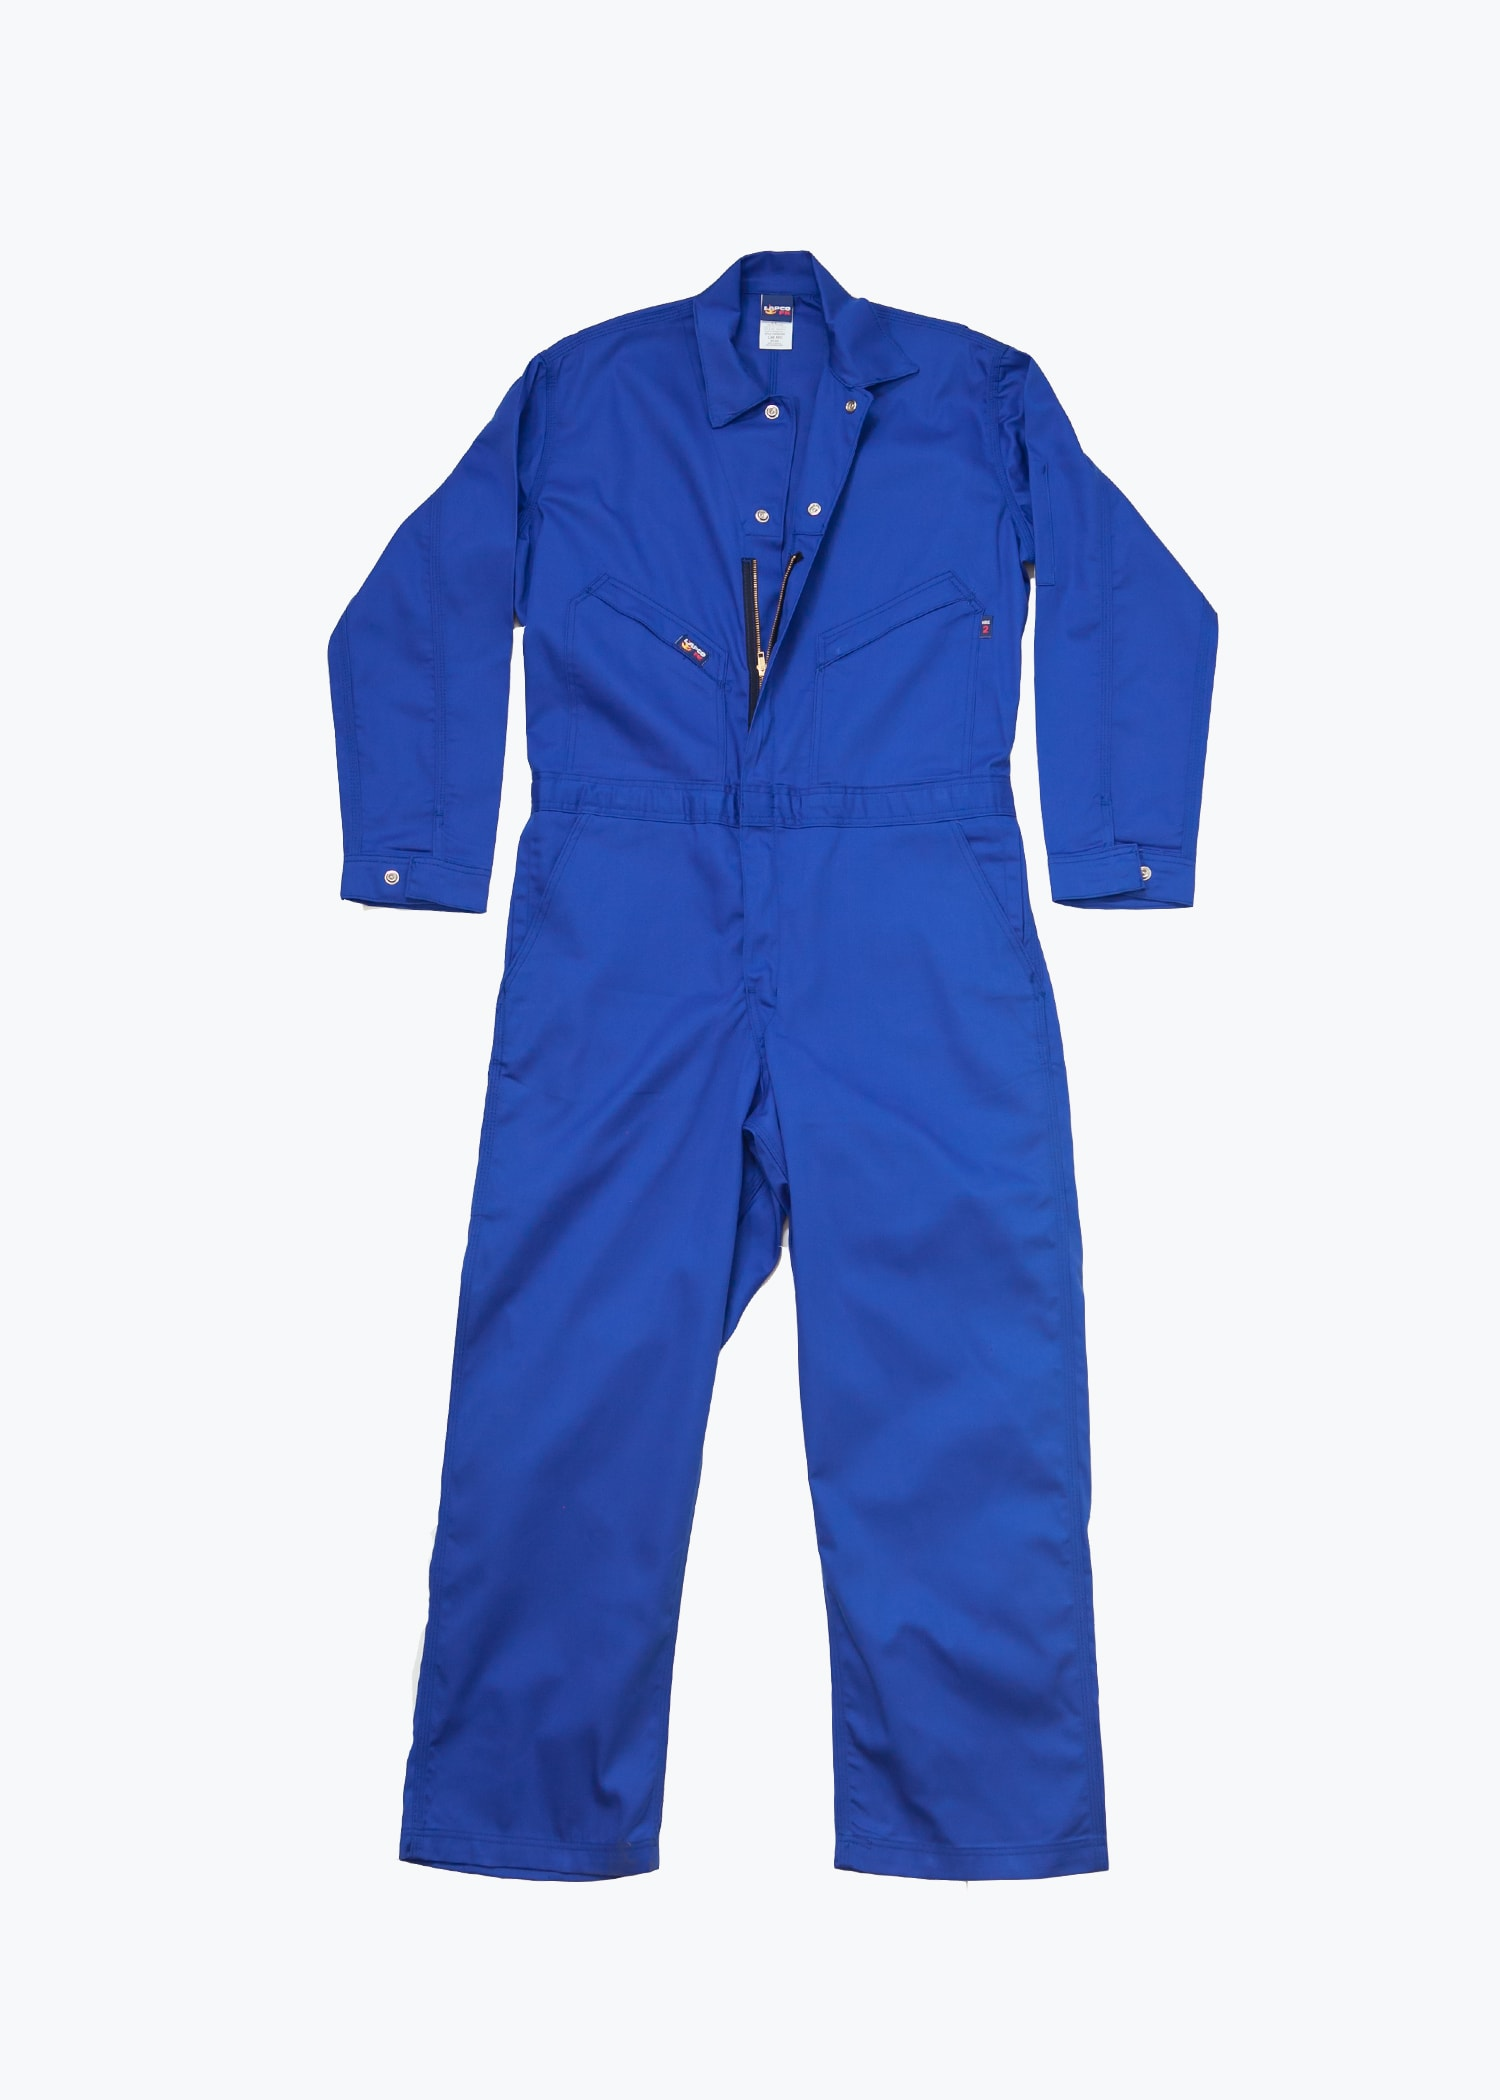 Men S Fr Lapco Deluxe Cotton Coveralls Cvfrd7ro